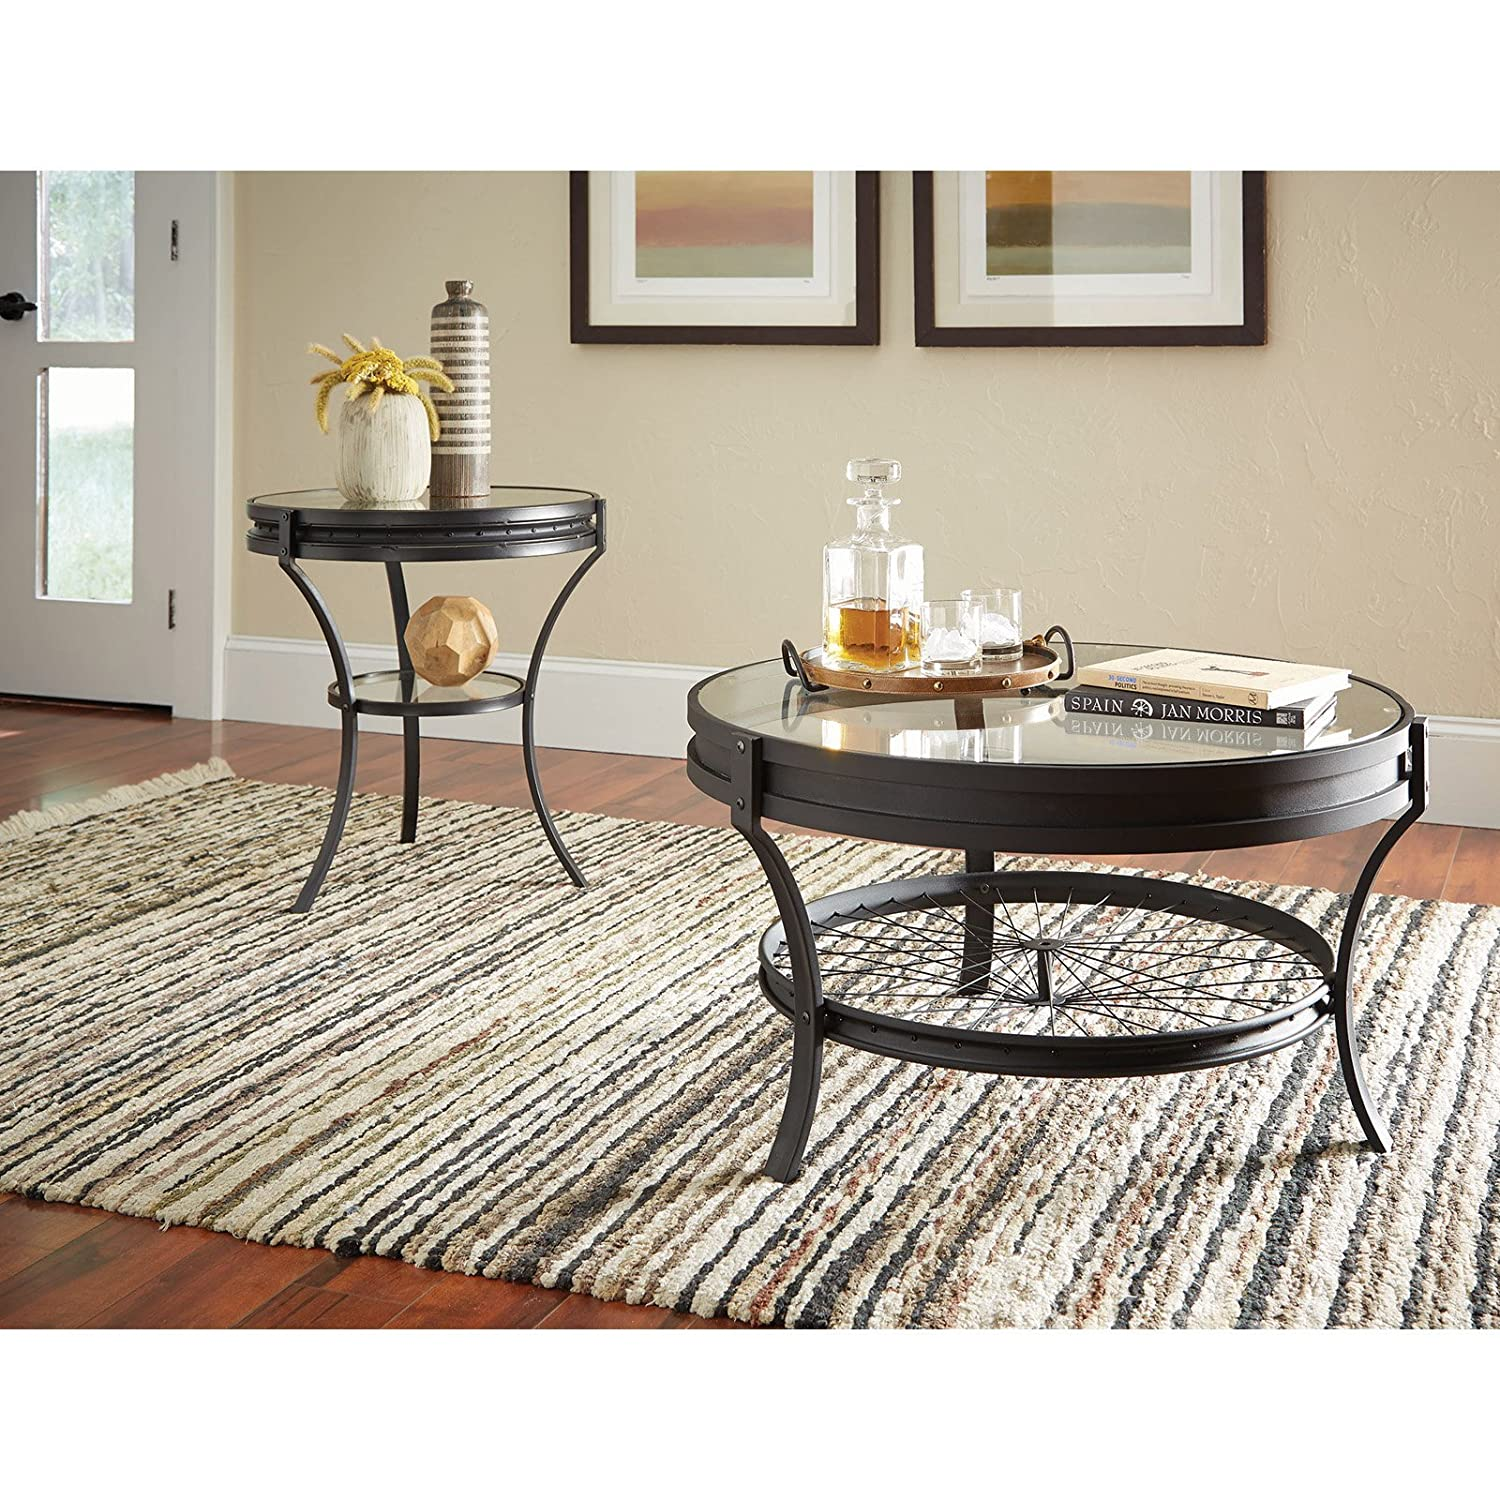 Amazon Coaster Round Glass Top Coffee Table in Sandy Black